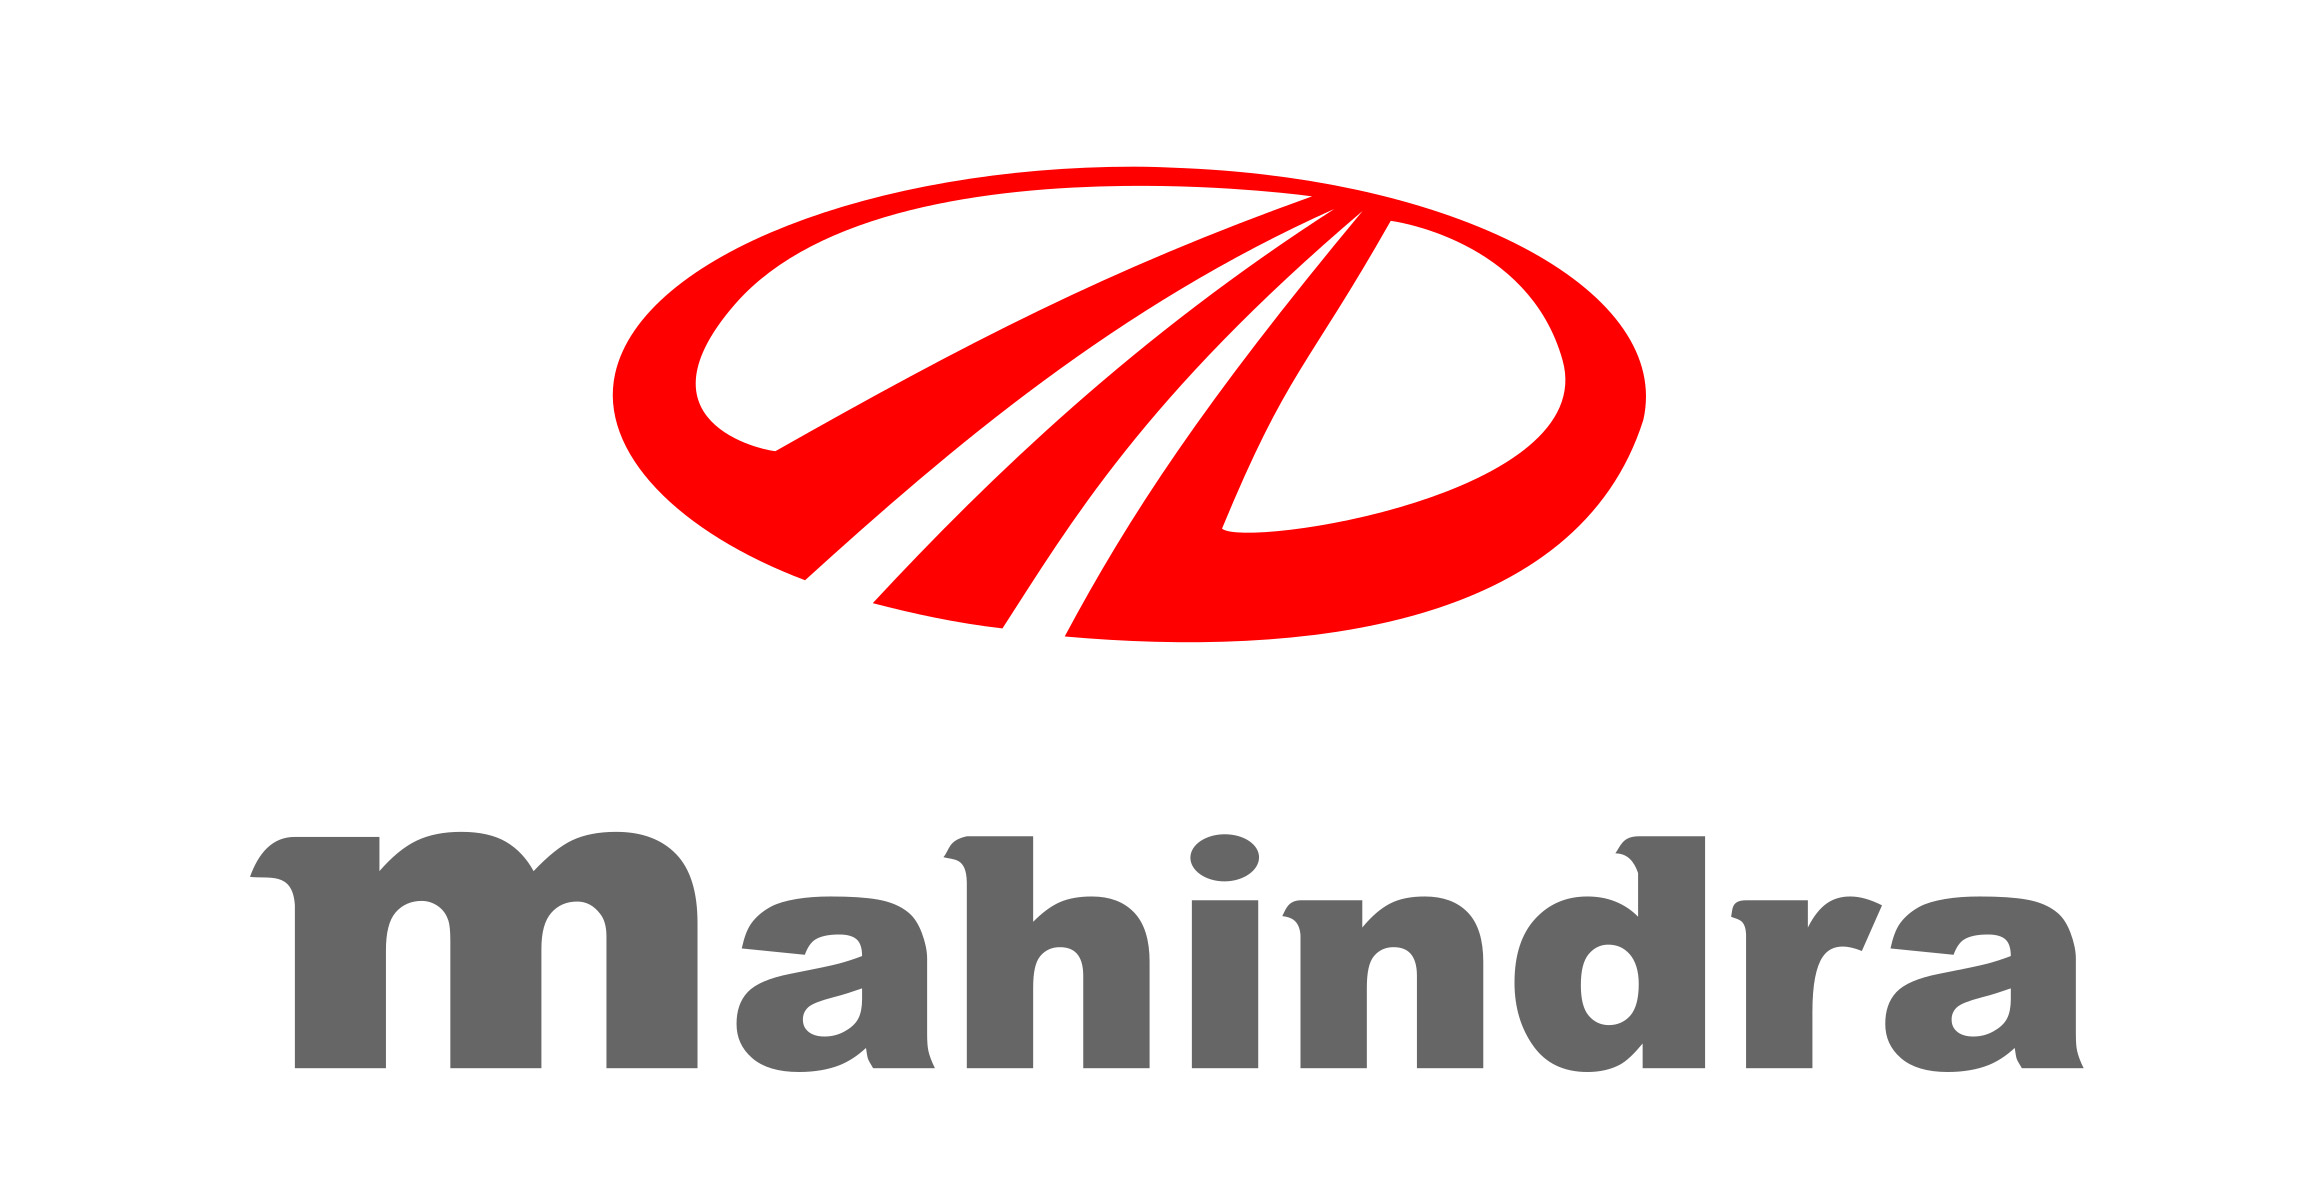 Mahindra Logo Meaning And History Latest Models World